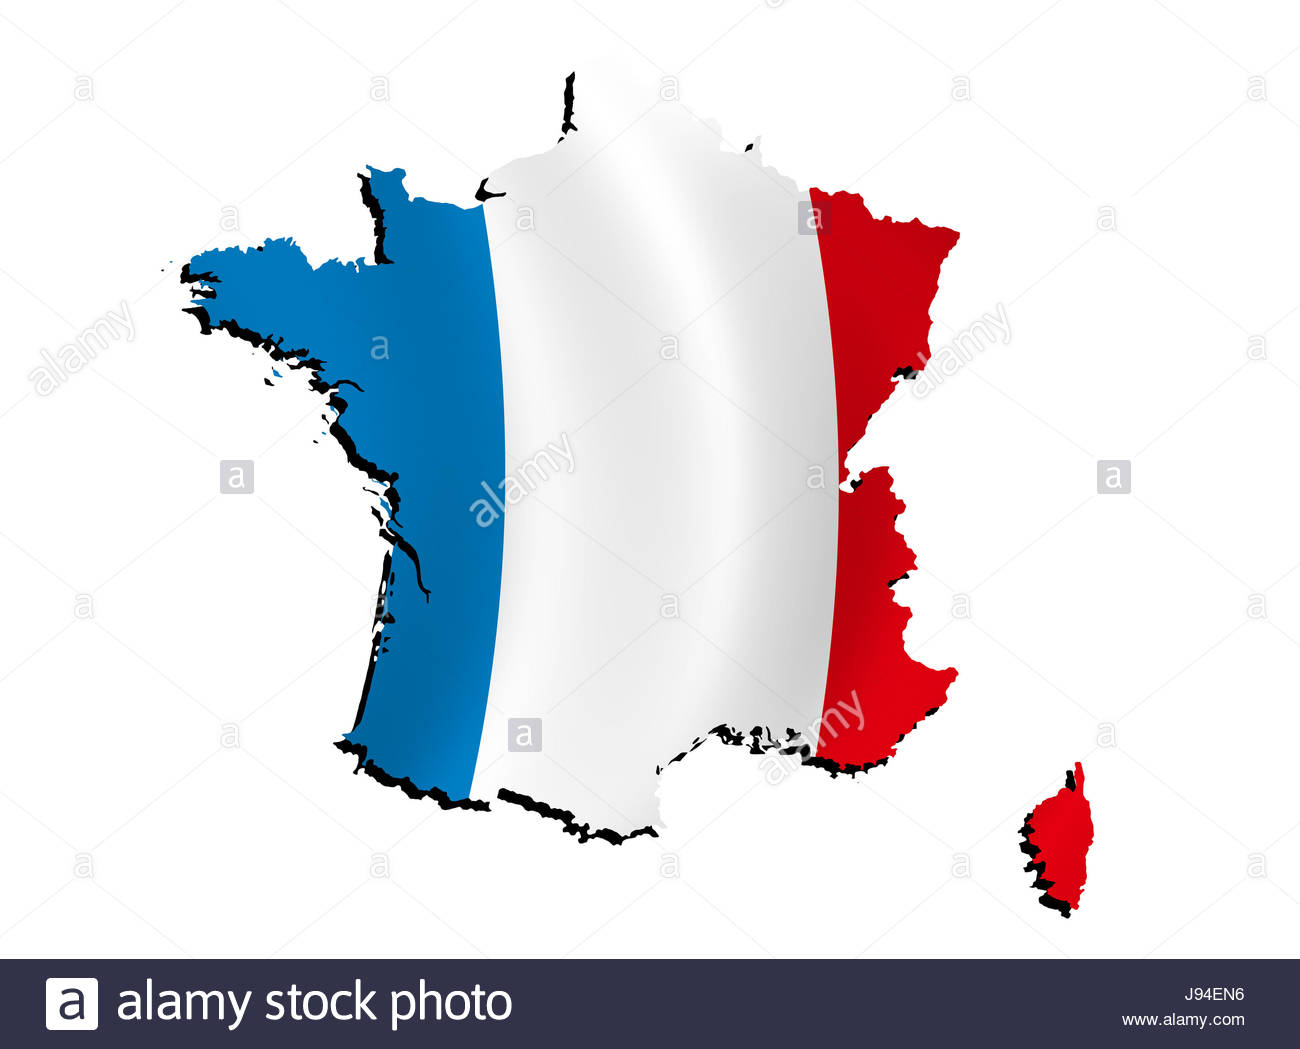 France Map Drawing At Getdrawings Com Free For Personal Use France